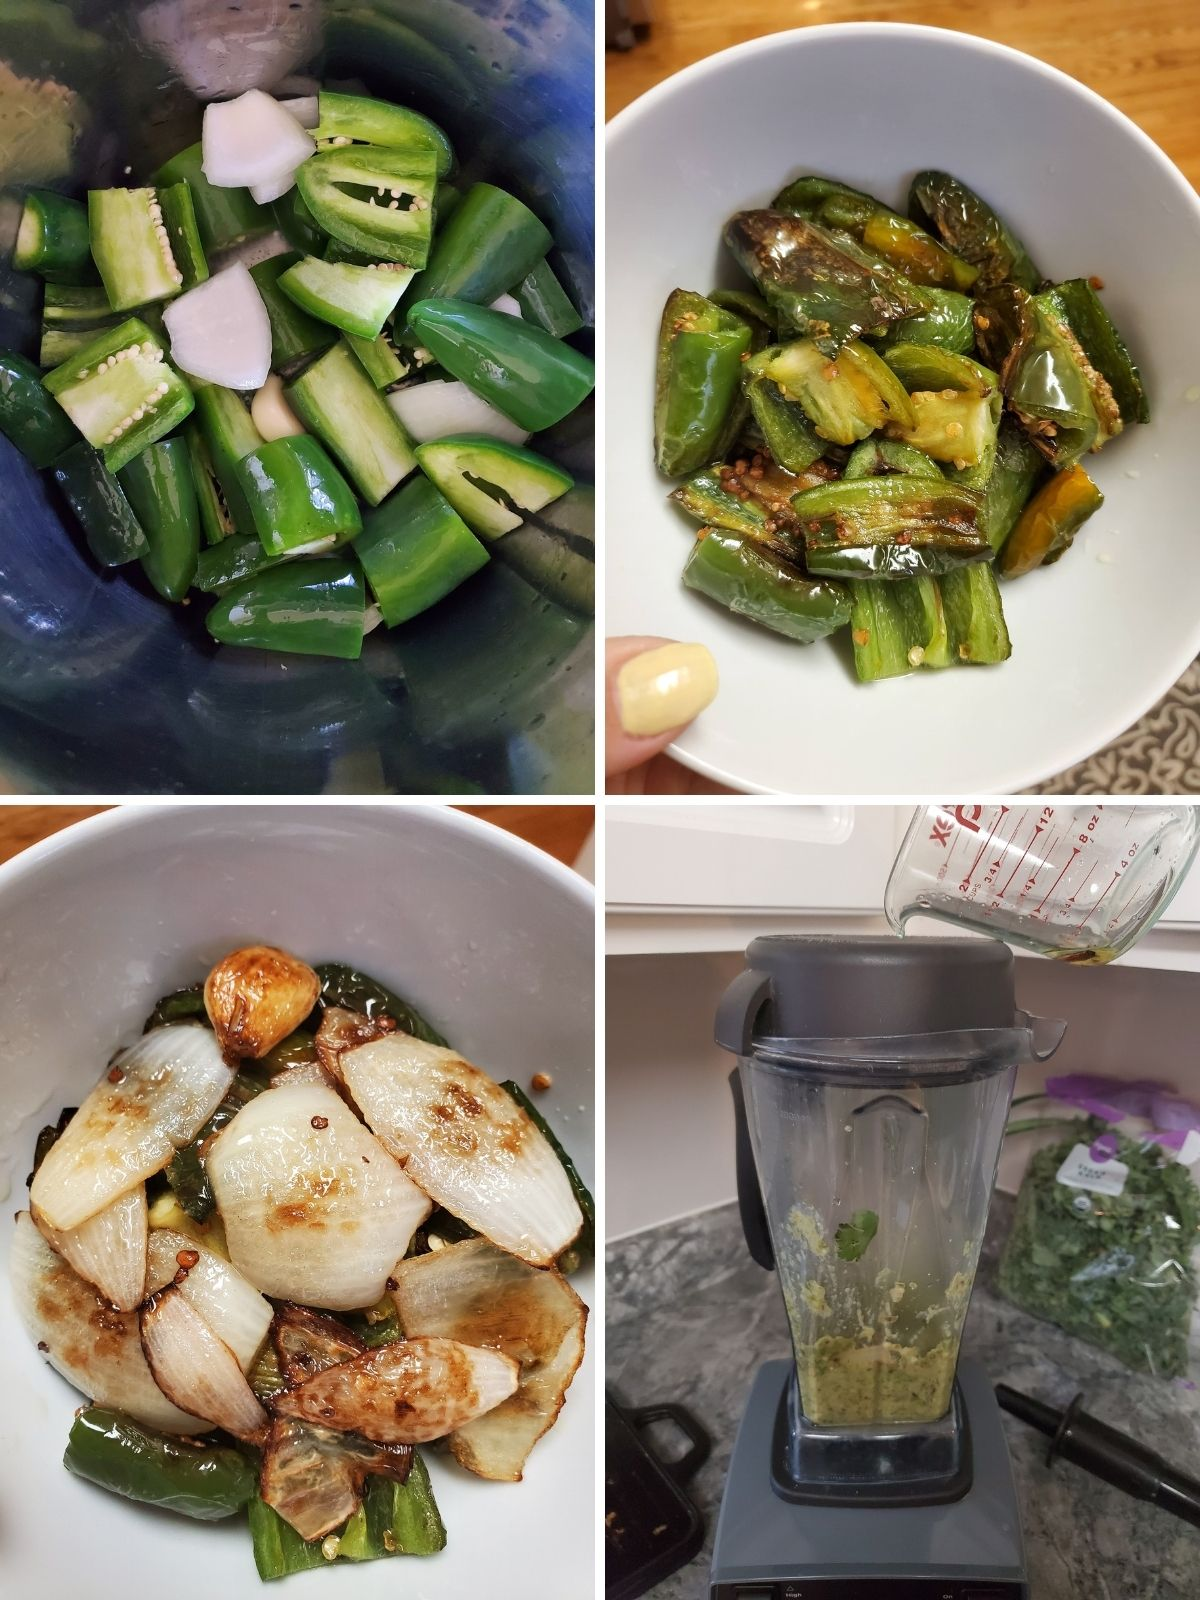 4 process photos of how to cook the ingredients